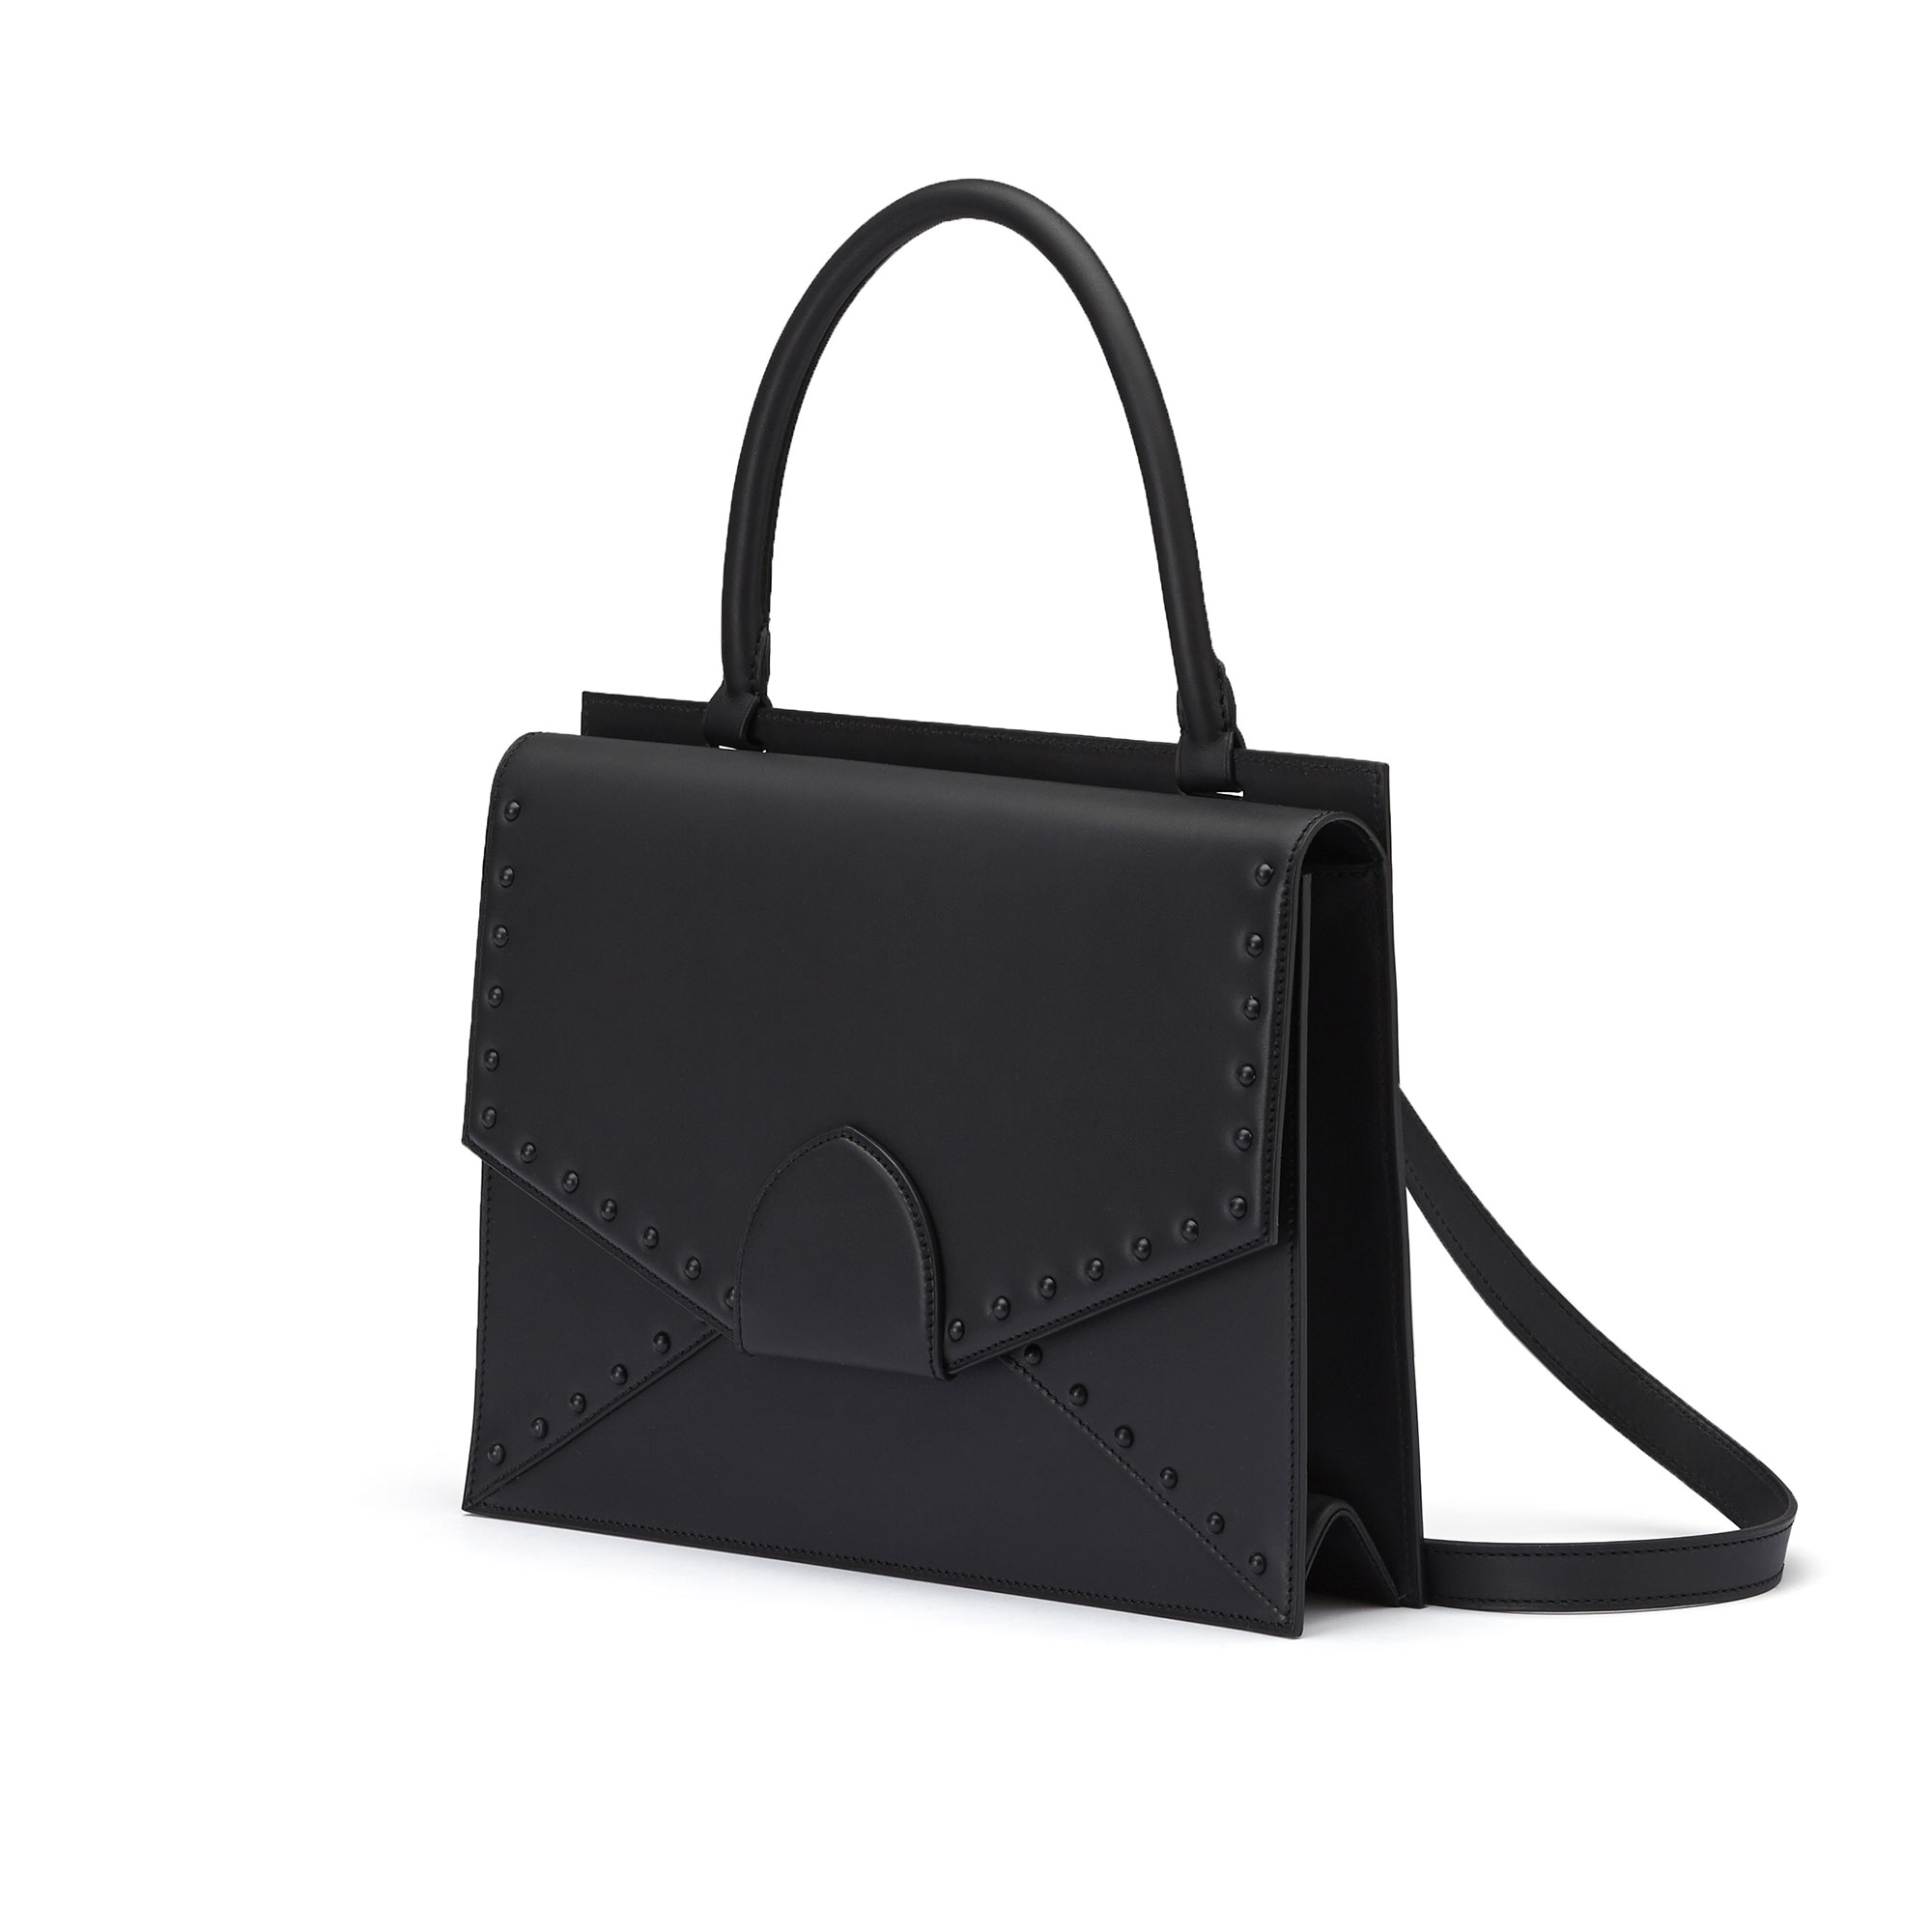 The black with studs french calf Dafne bag by Bertoni 1949 02